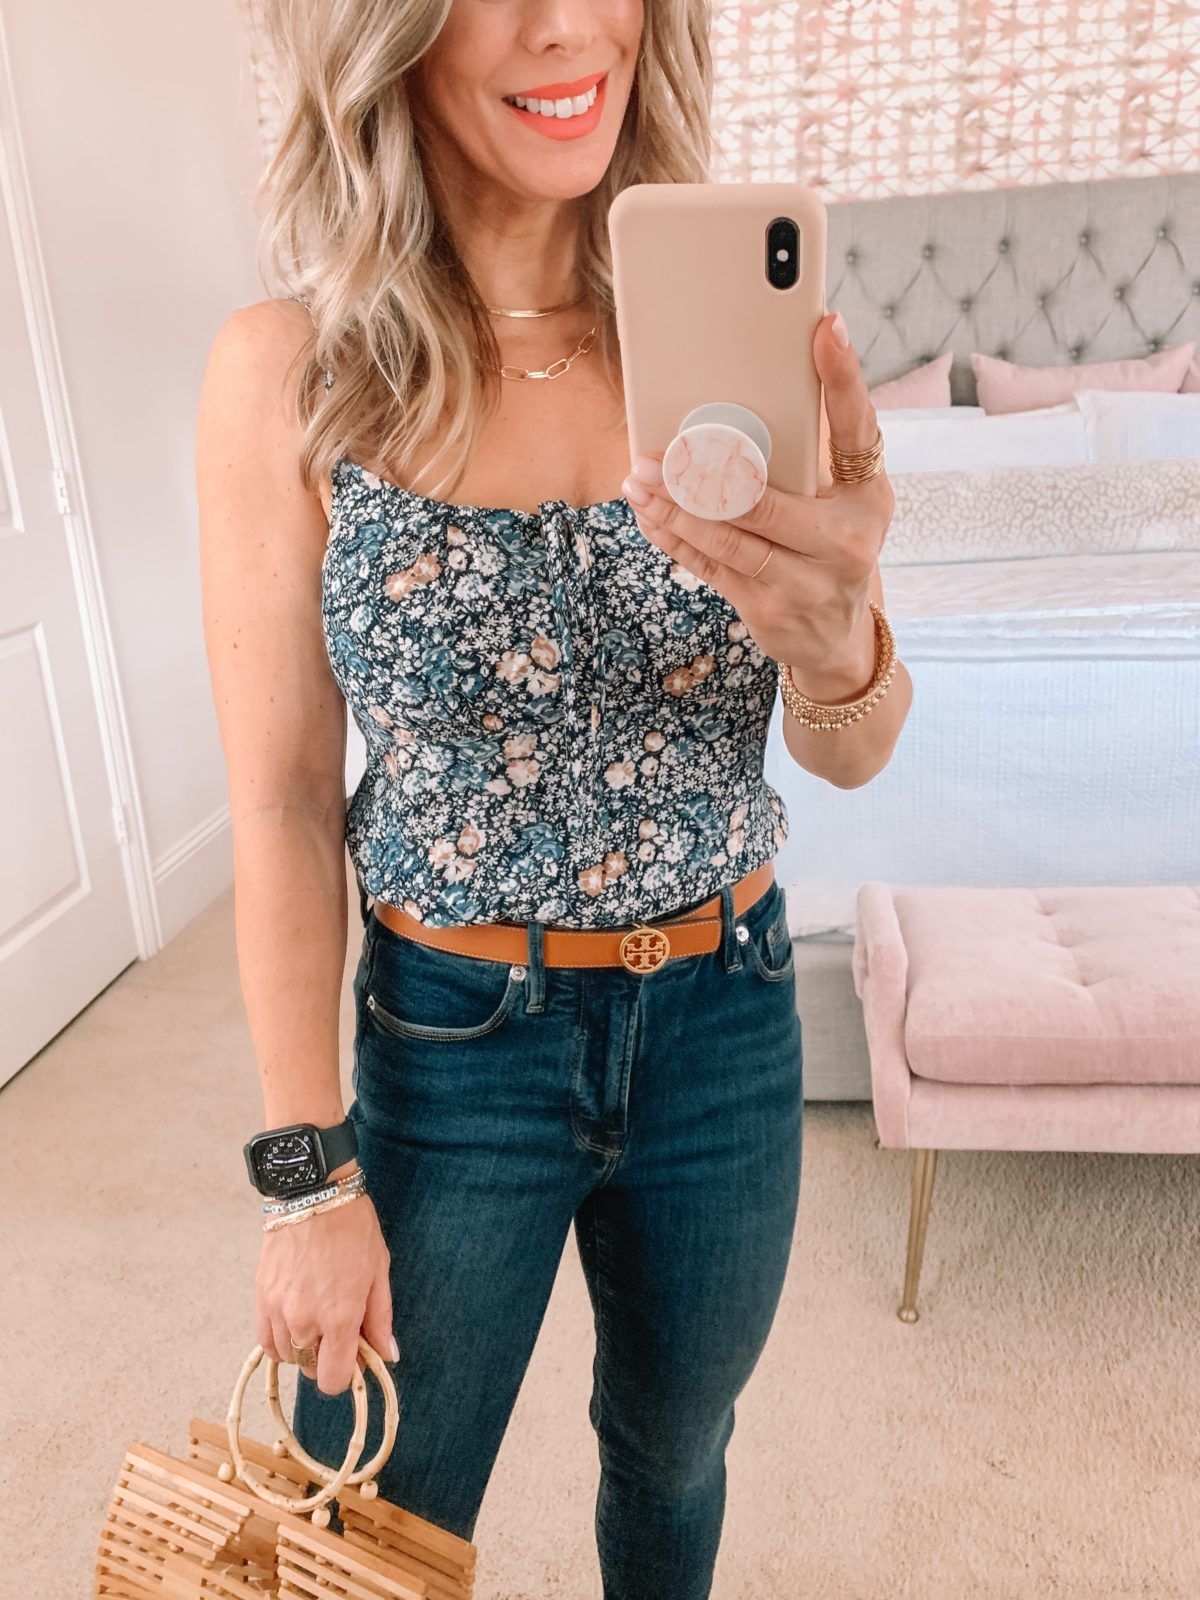 Dressing Room Finds, Nordstrom, Abercrombie, Bodysuit, Jeans, Sandals, Bamboo Clutch